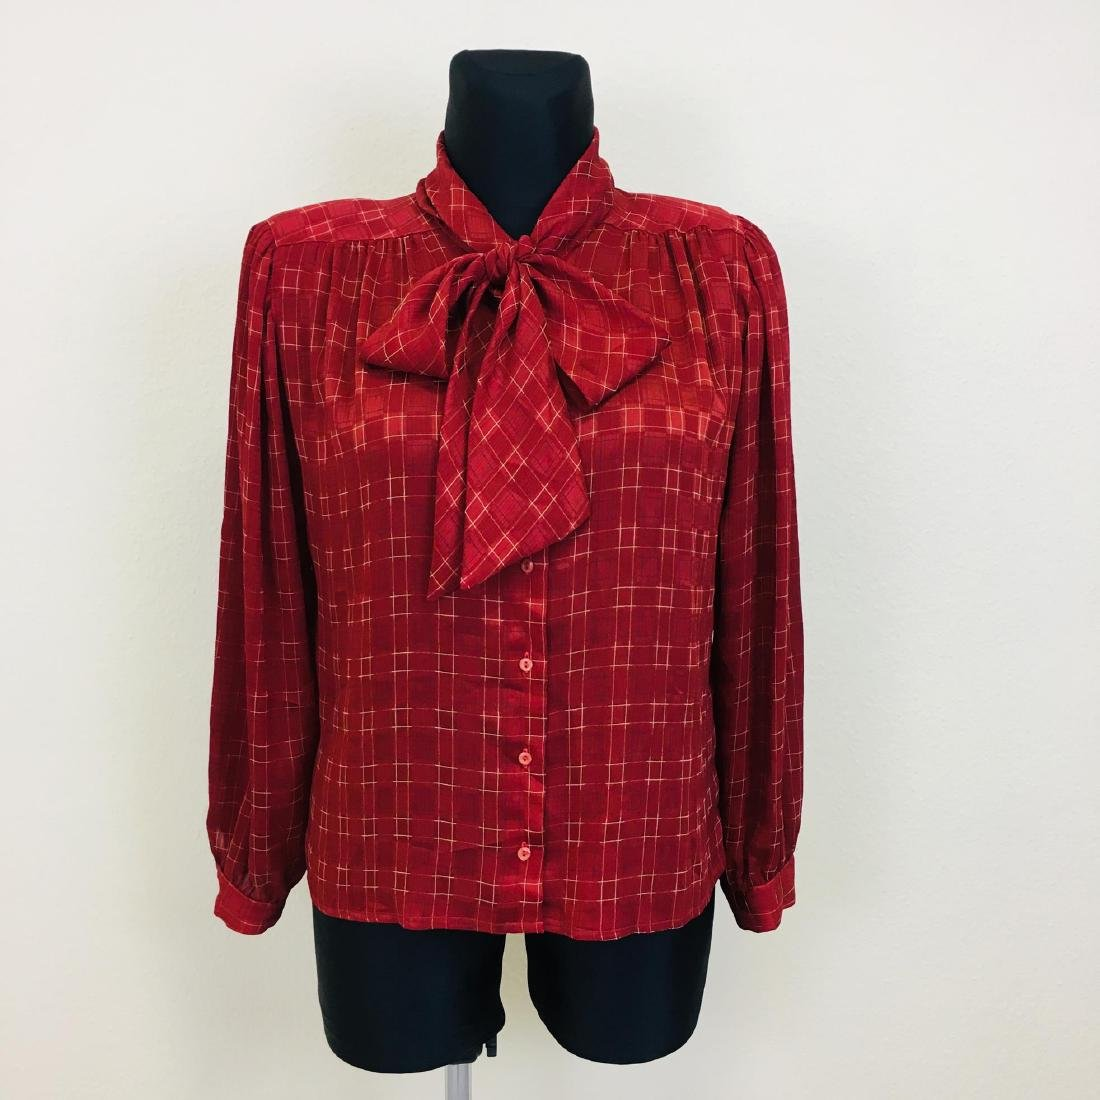 Vintage Women's Evening Coctail Top Blouse